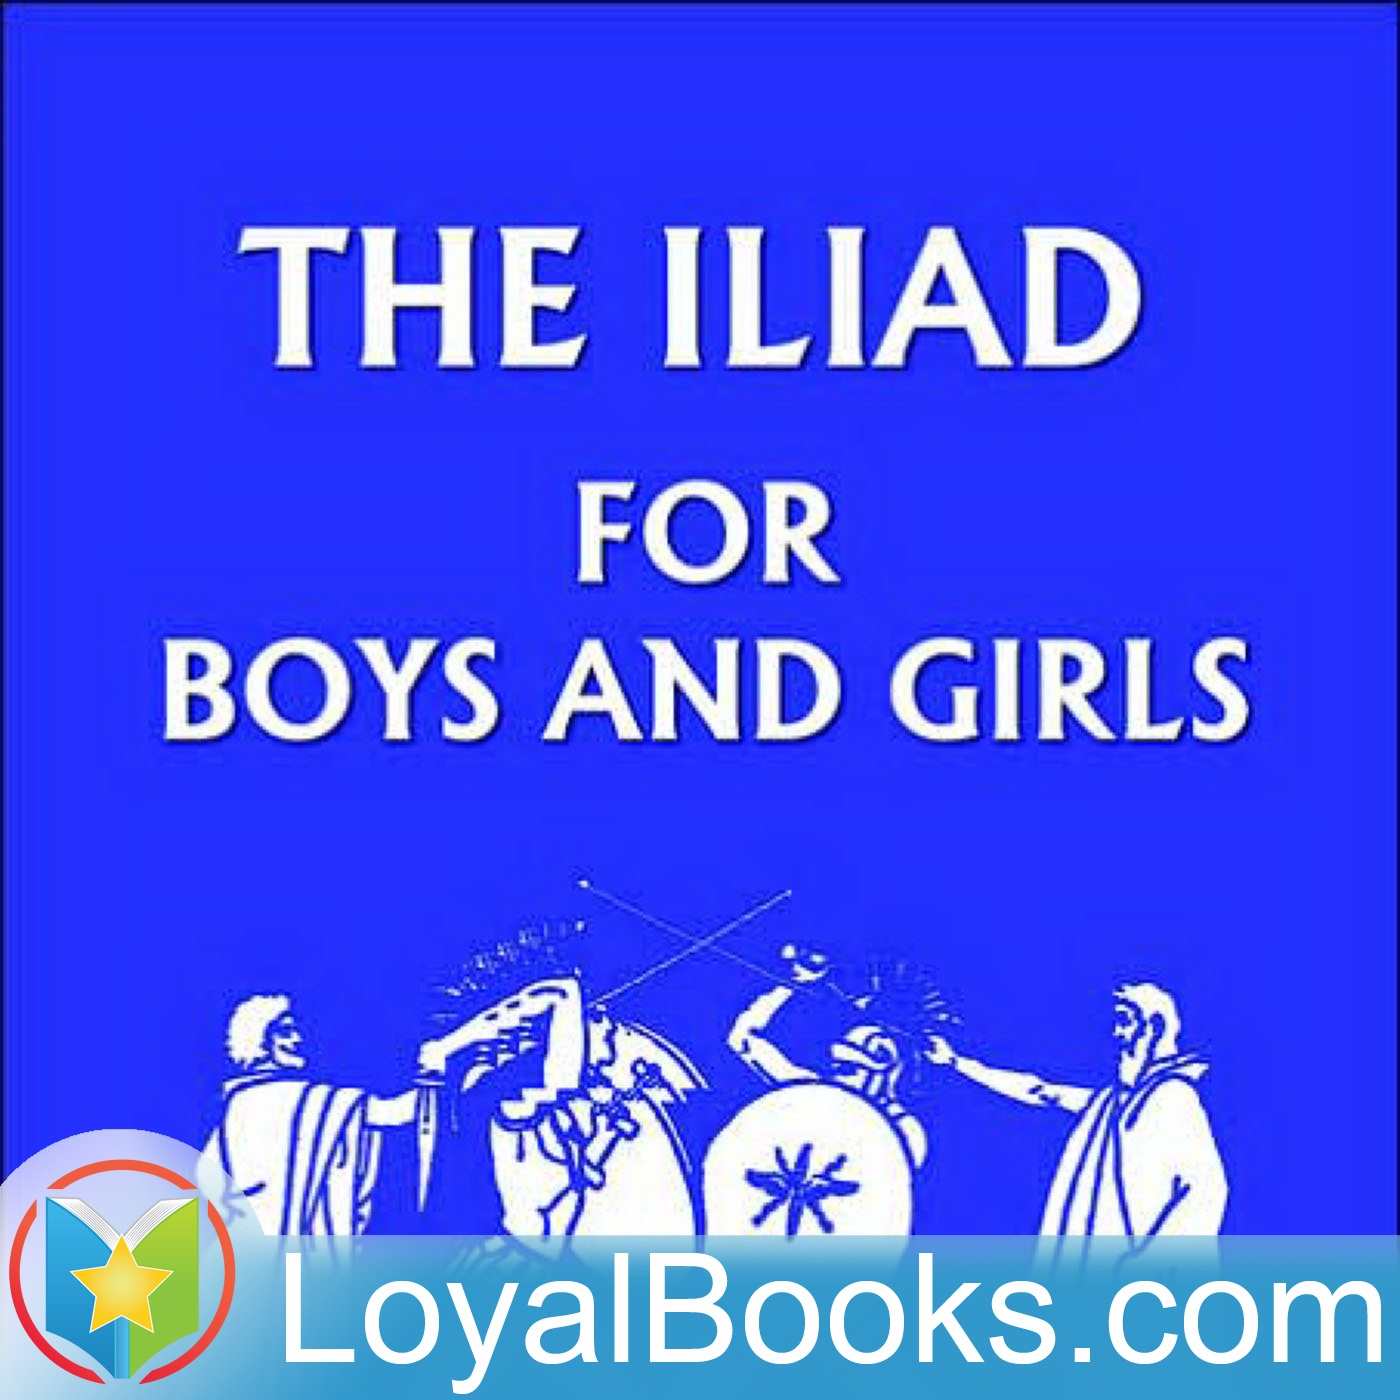 <![CDATA[The Iliad for Boys and Girls by Alfred J. Church]]>